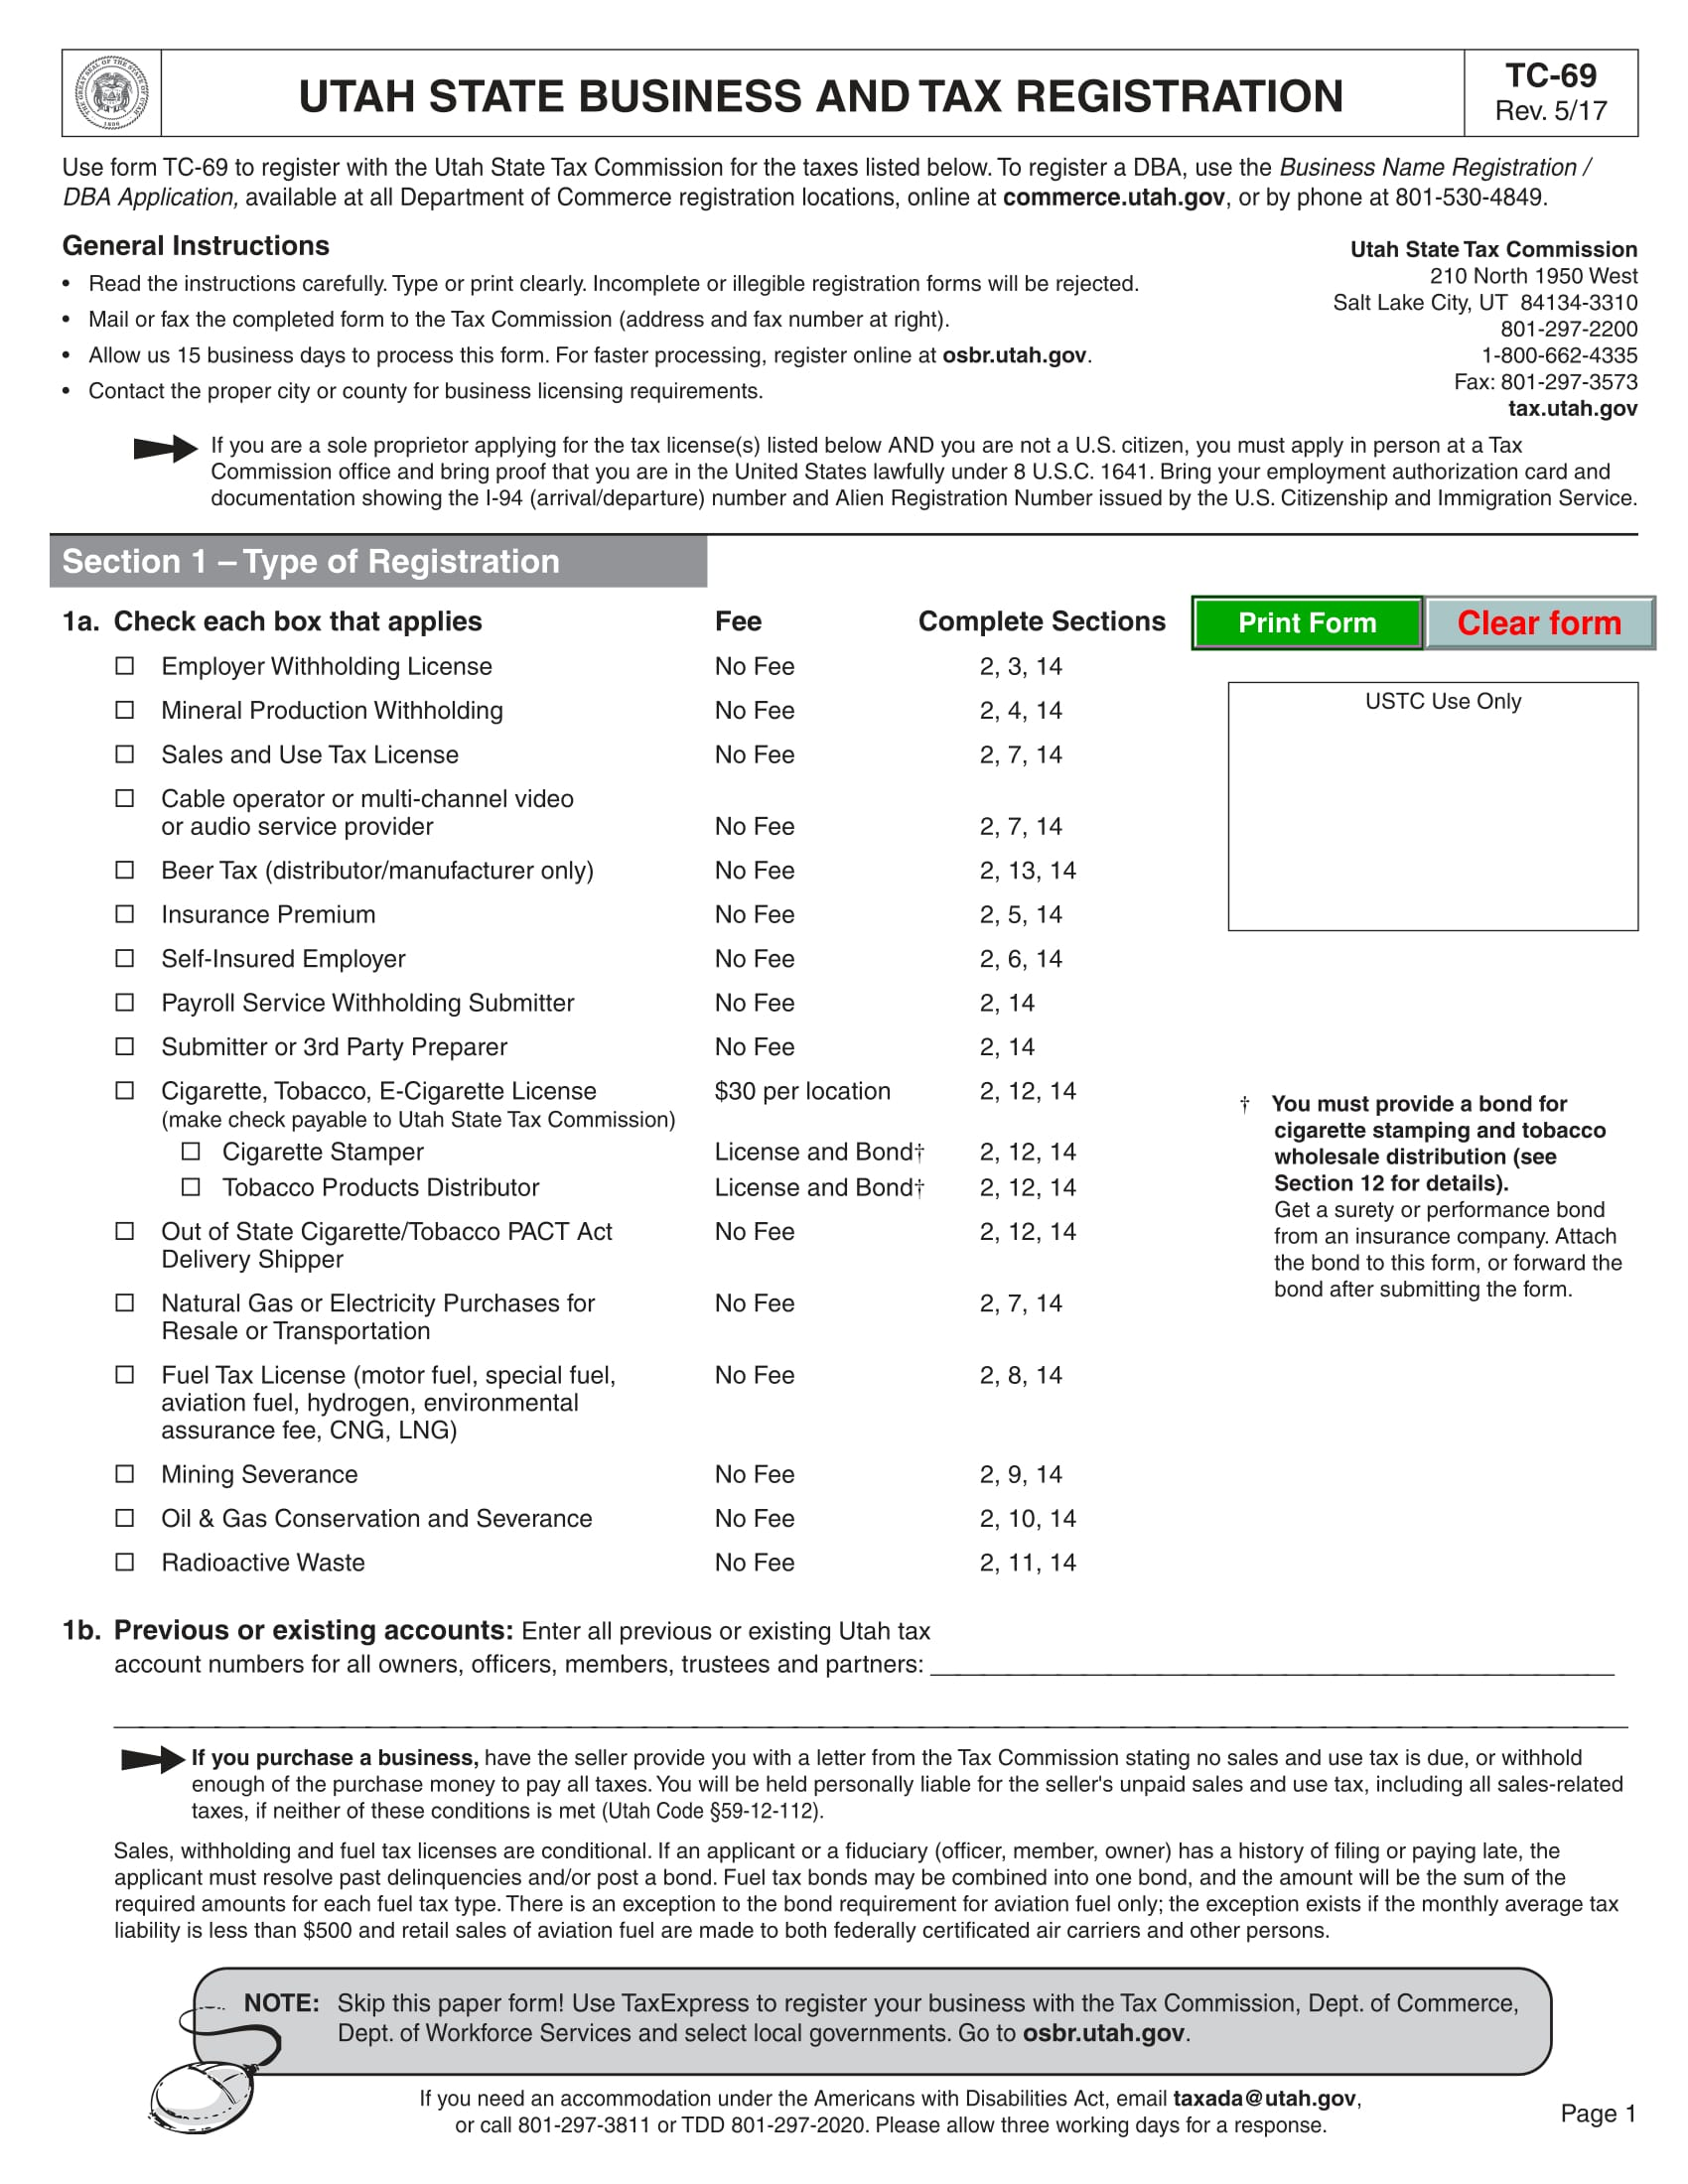 state business and tax registration 1